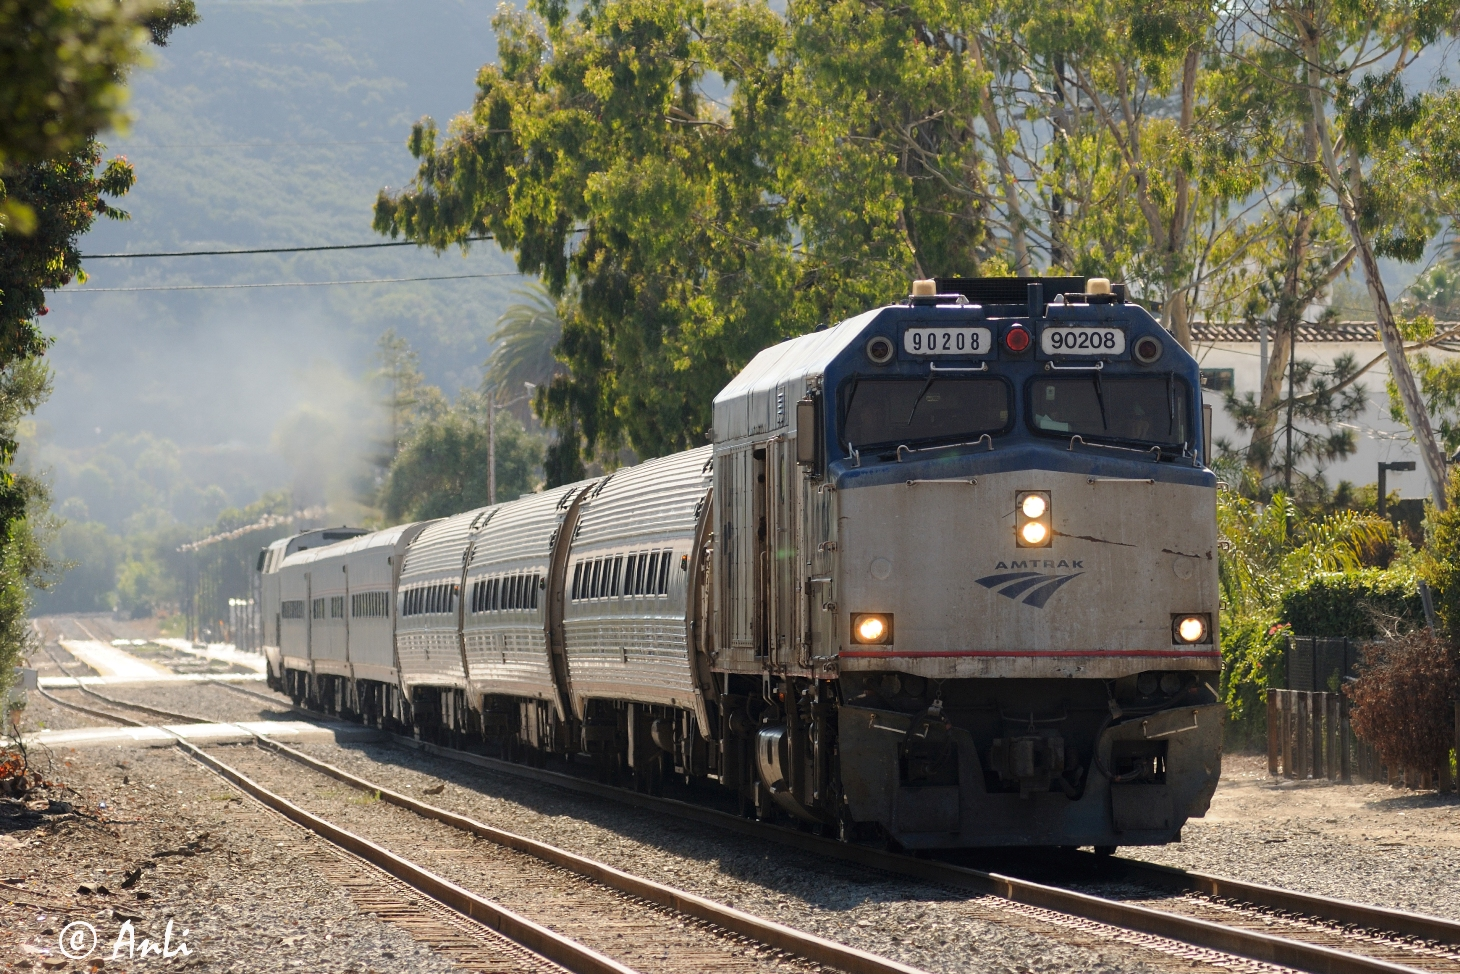 Amtrak in Santa Barbara